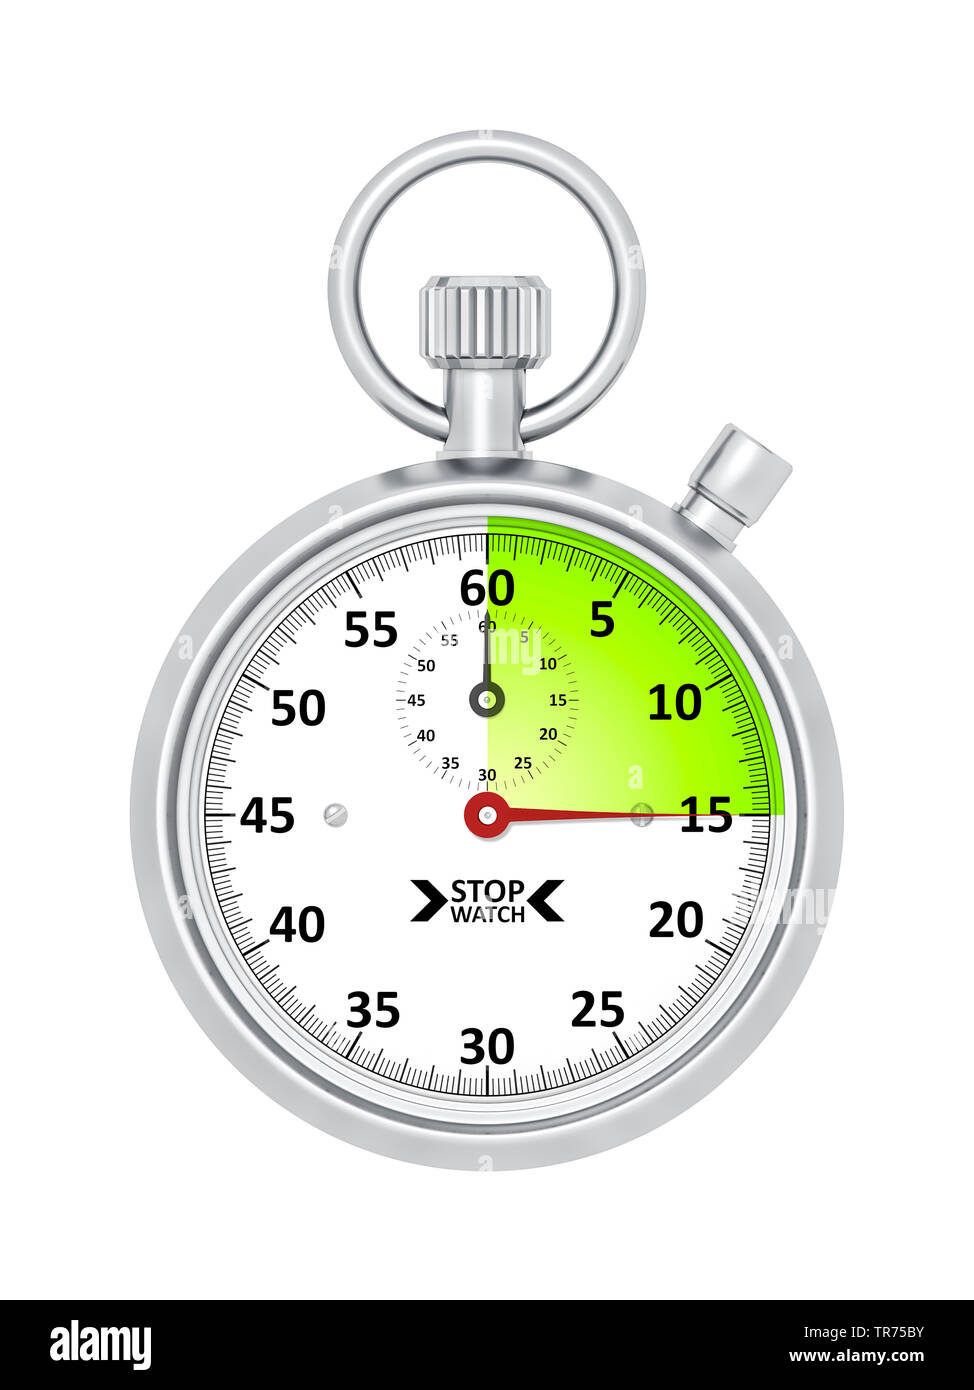 silver stopclock, cutout, 15 seconds - Stock Image